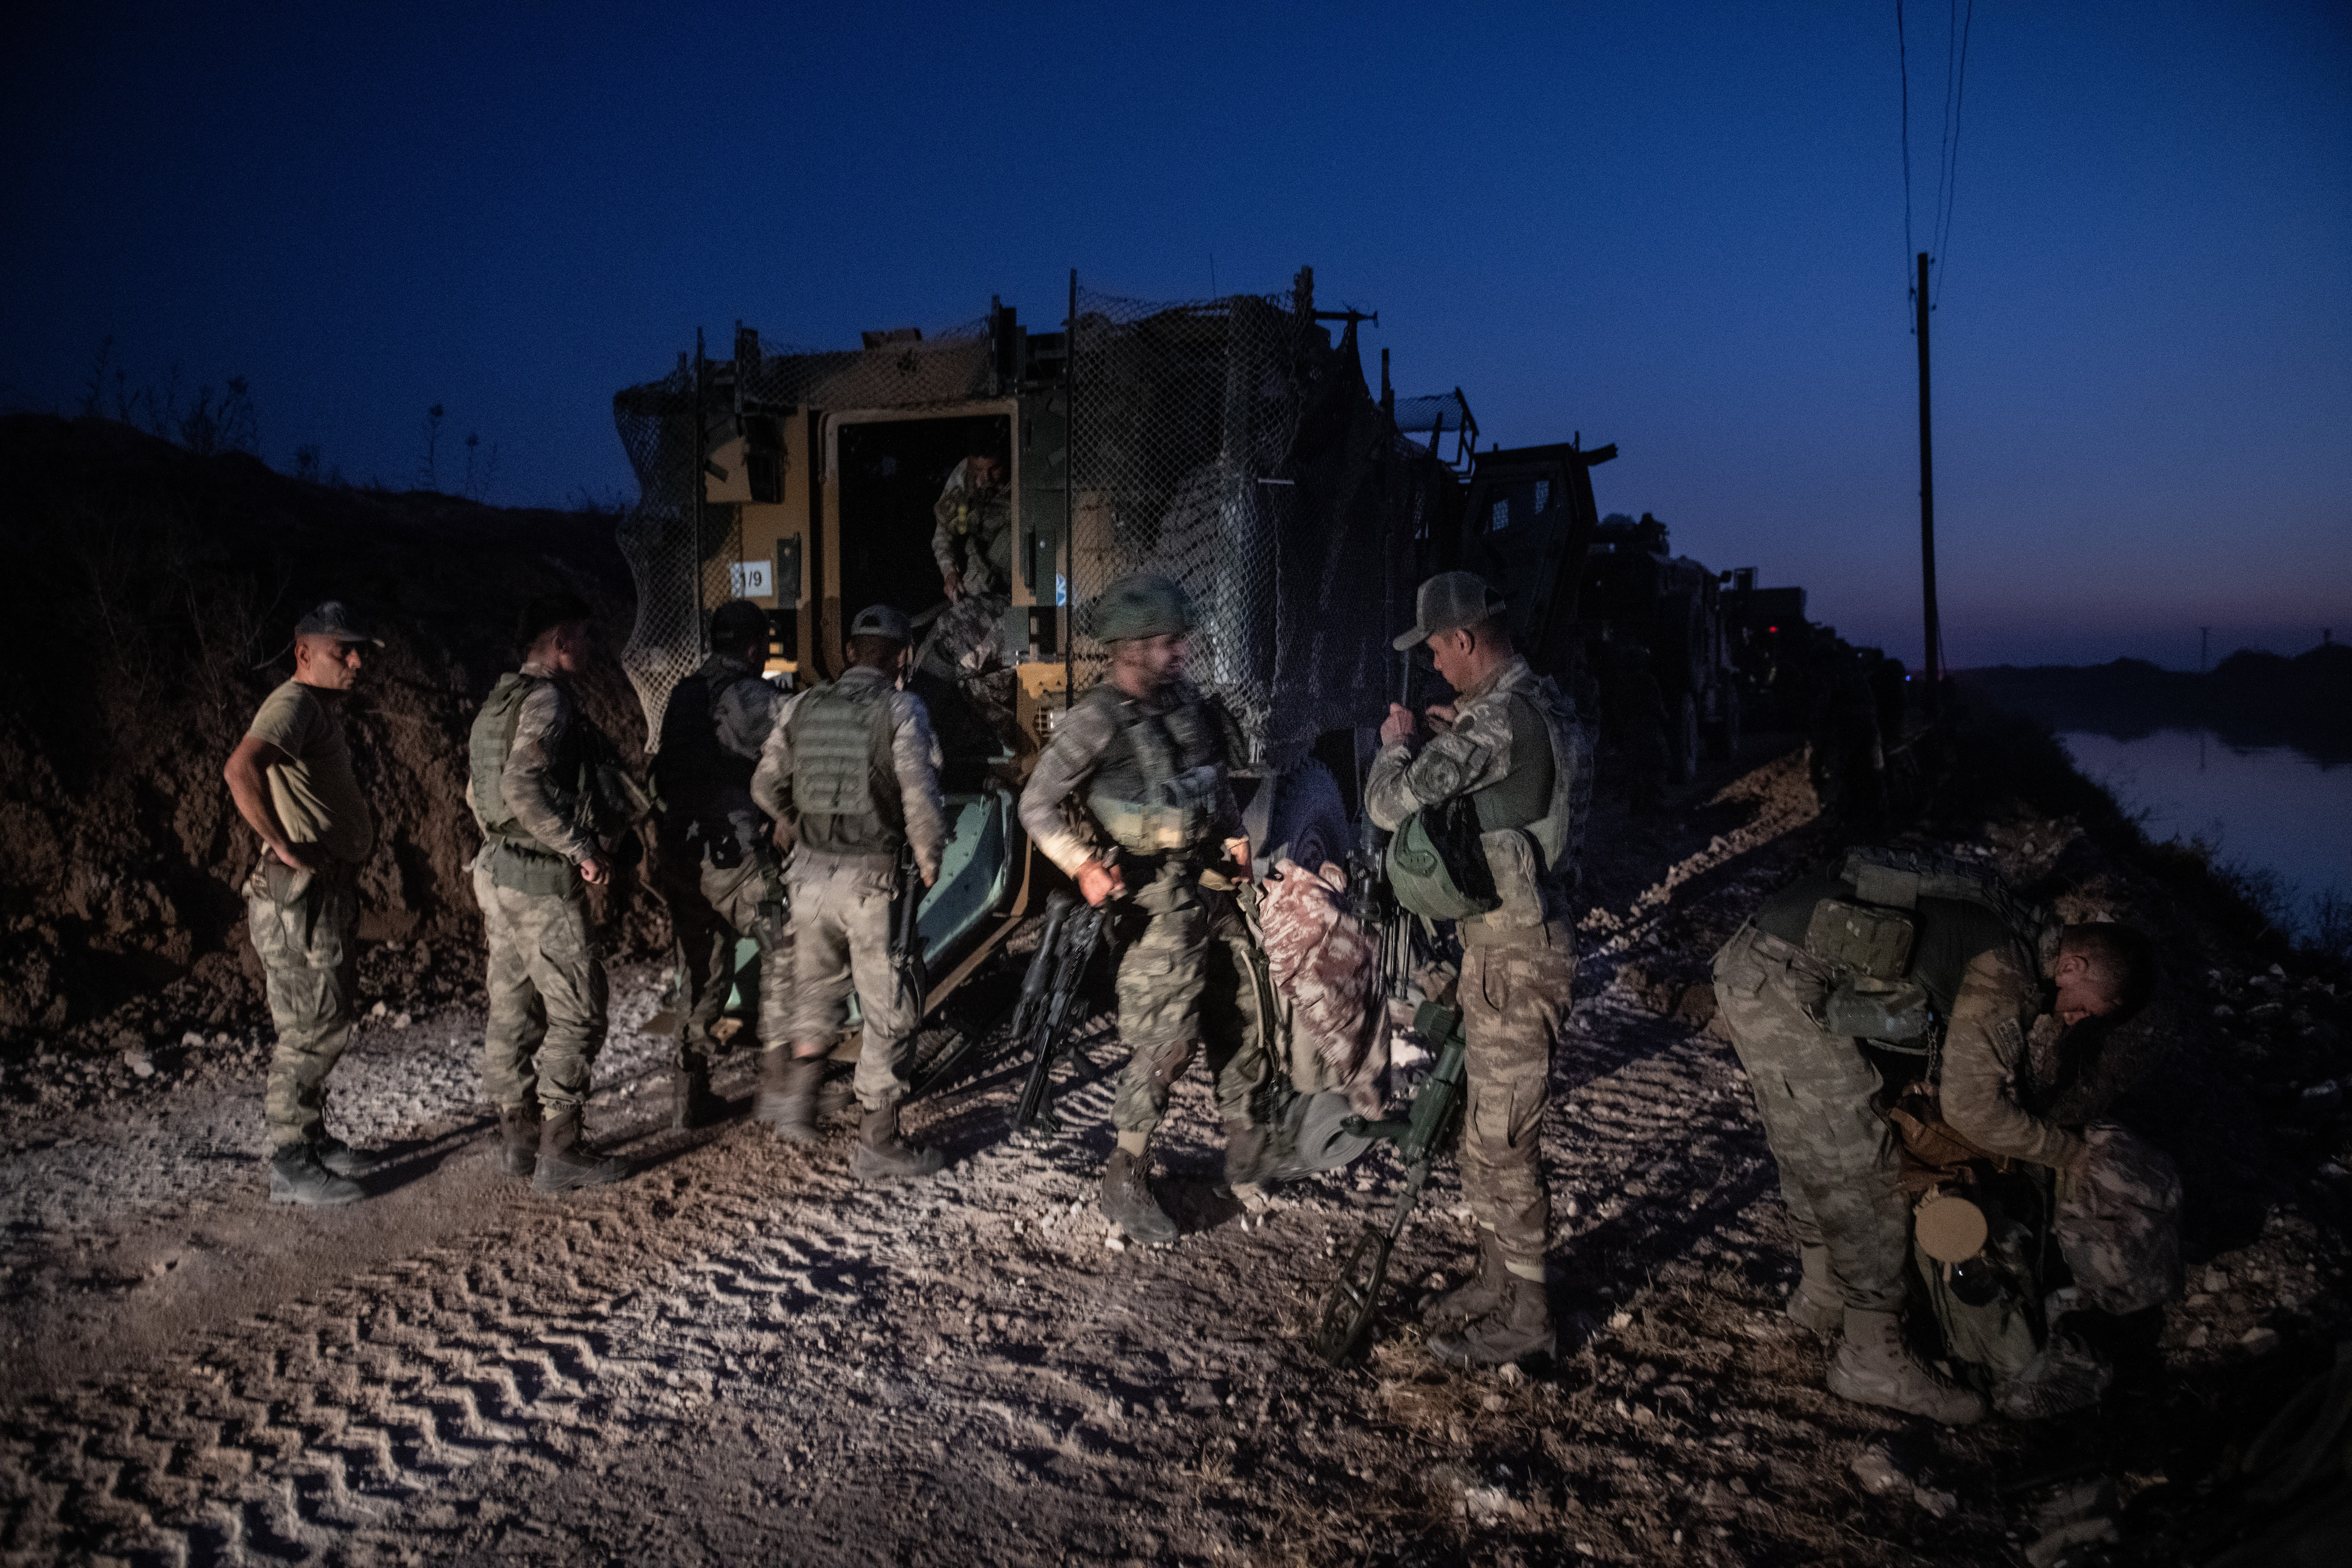 AKCAKALE, TURKEY - OCTOBER 09: First group of Turkish infantry prepare to enter Syria on the border between Turkey and Syria on October 09, 2019 in Akcakale, Turkey. The military action is part of a campaign to extend Turkish control of more of northern Syria, a large swath of which is currently held by Syrian Kurds, whom Turkey regards as a threat. U.S. President Donald Trump granted tacit American approval to this campaign, withdrawing his country's troops from several Syrian outposts near the Turkish border. (Photo by Burak Kara/Getty Images)